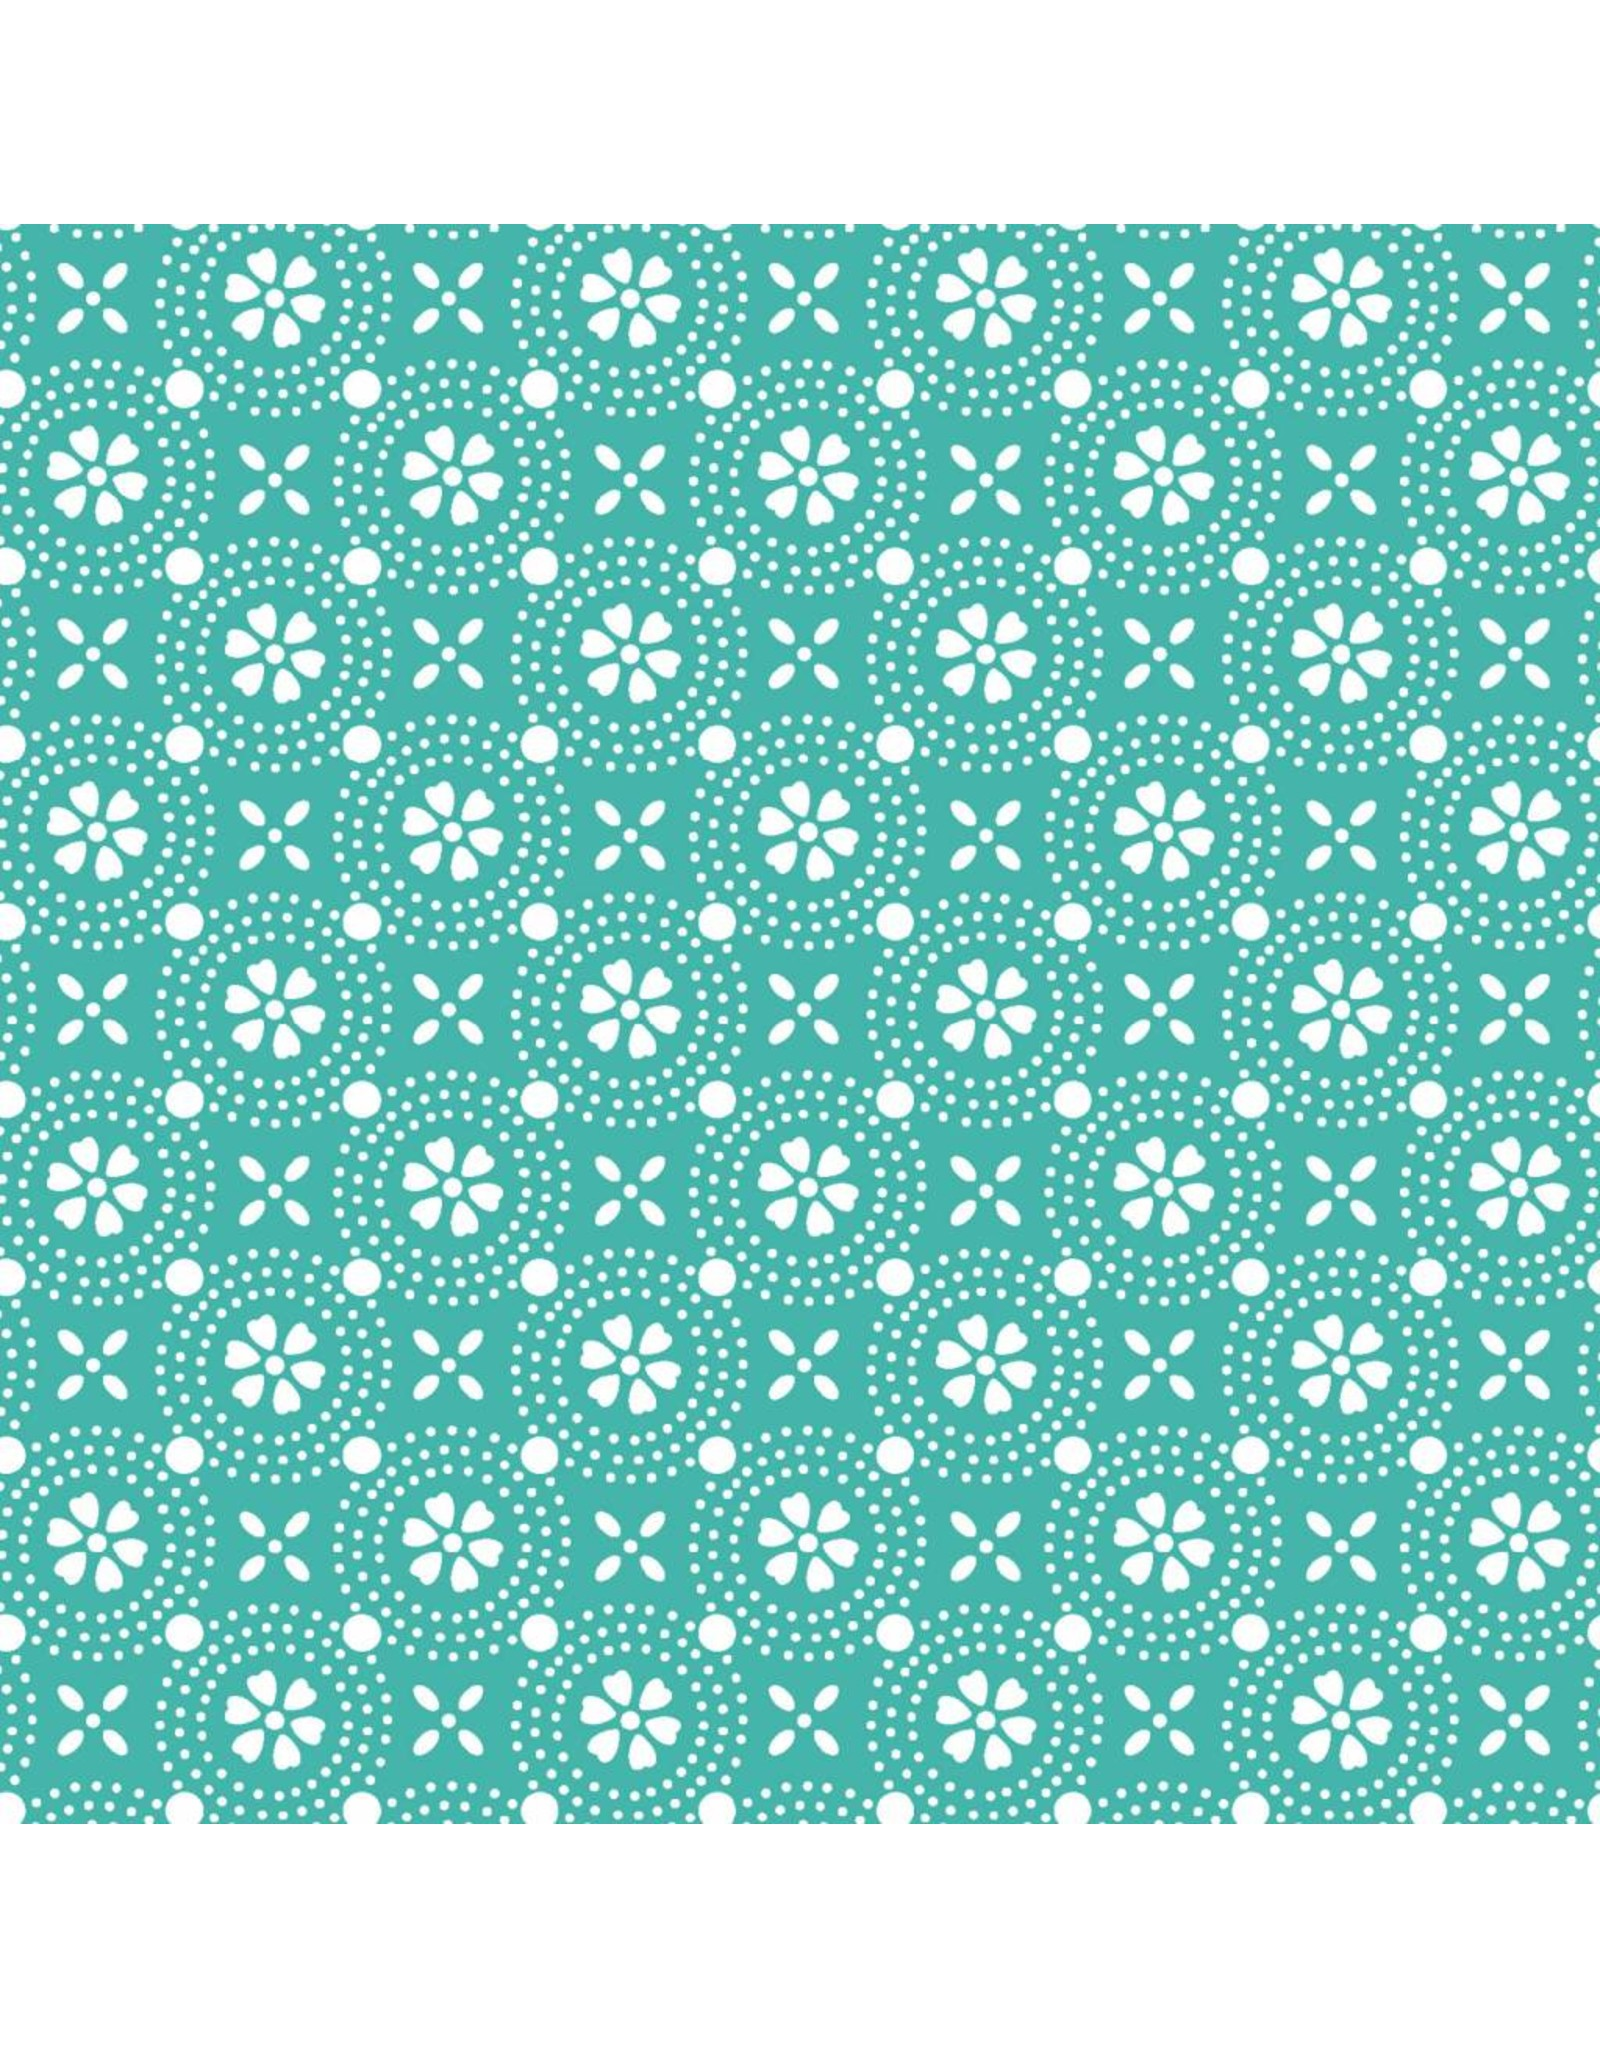 Maywood Studio Dotted Circles - Teal